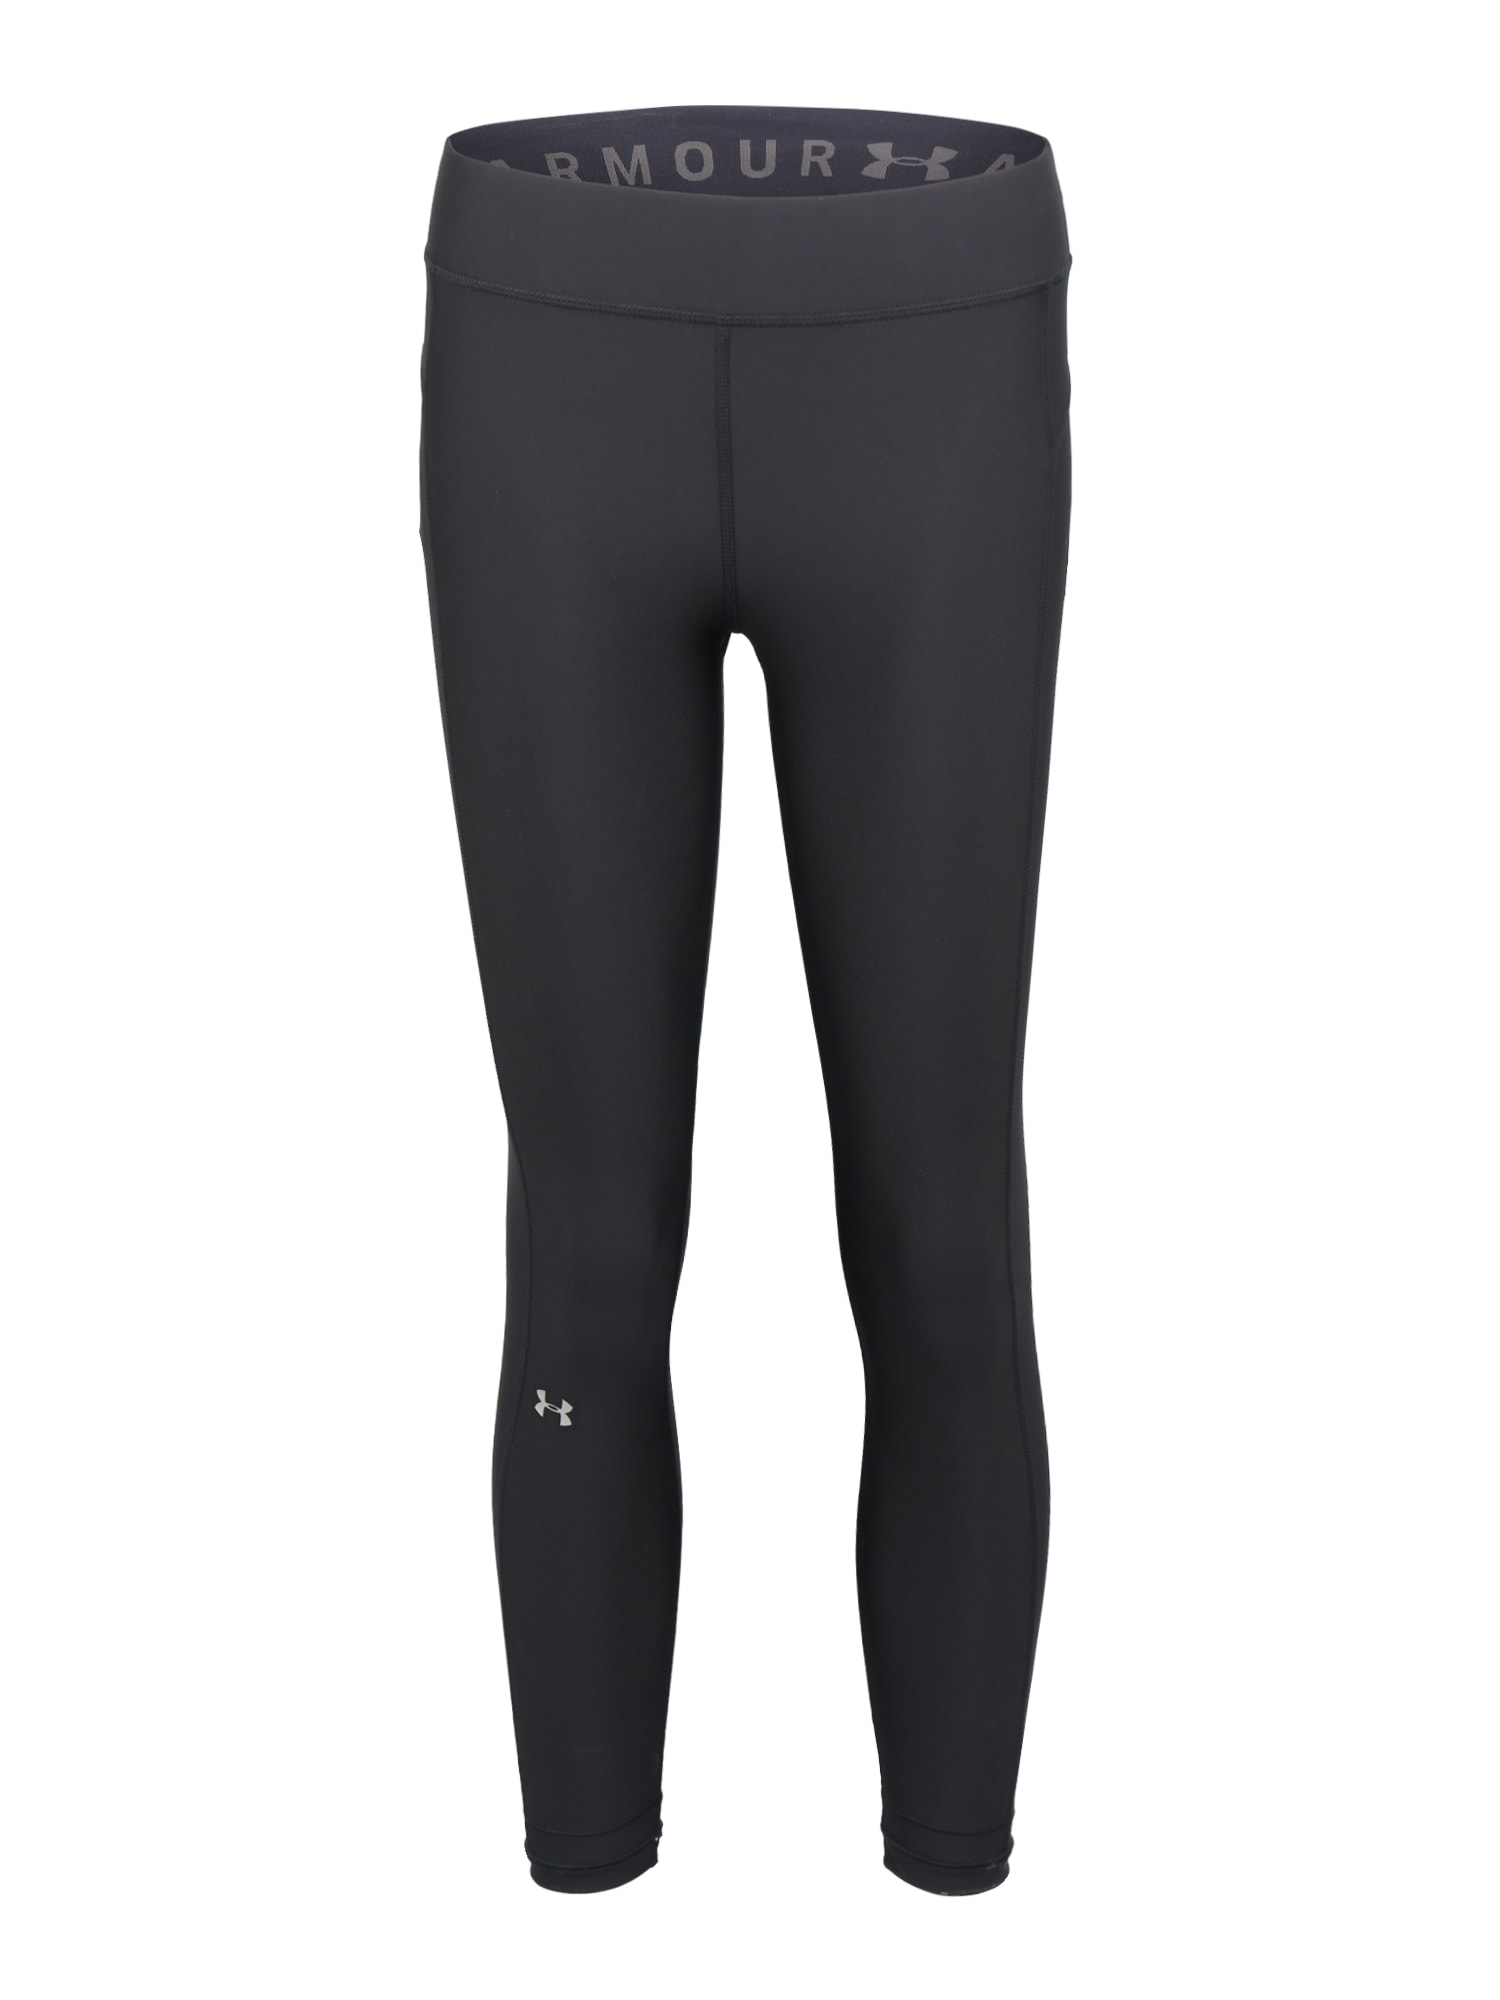 Tights | Sportbekleidung > Sporthosen > Tights | Under Armour